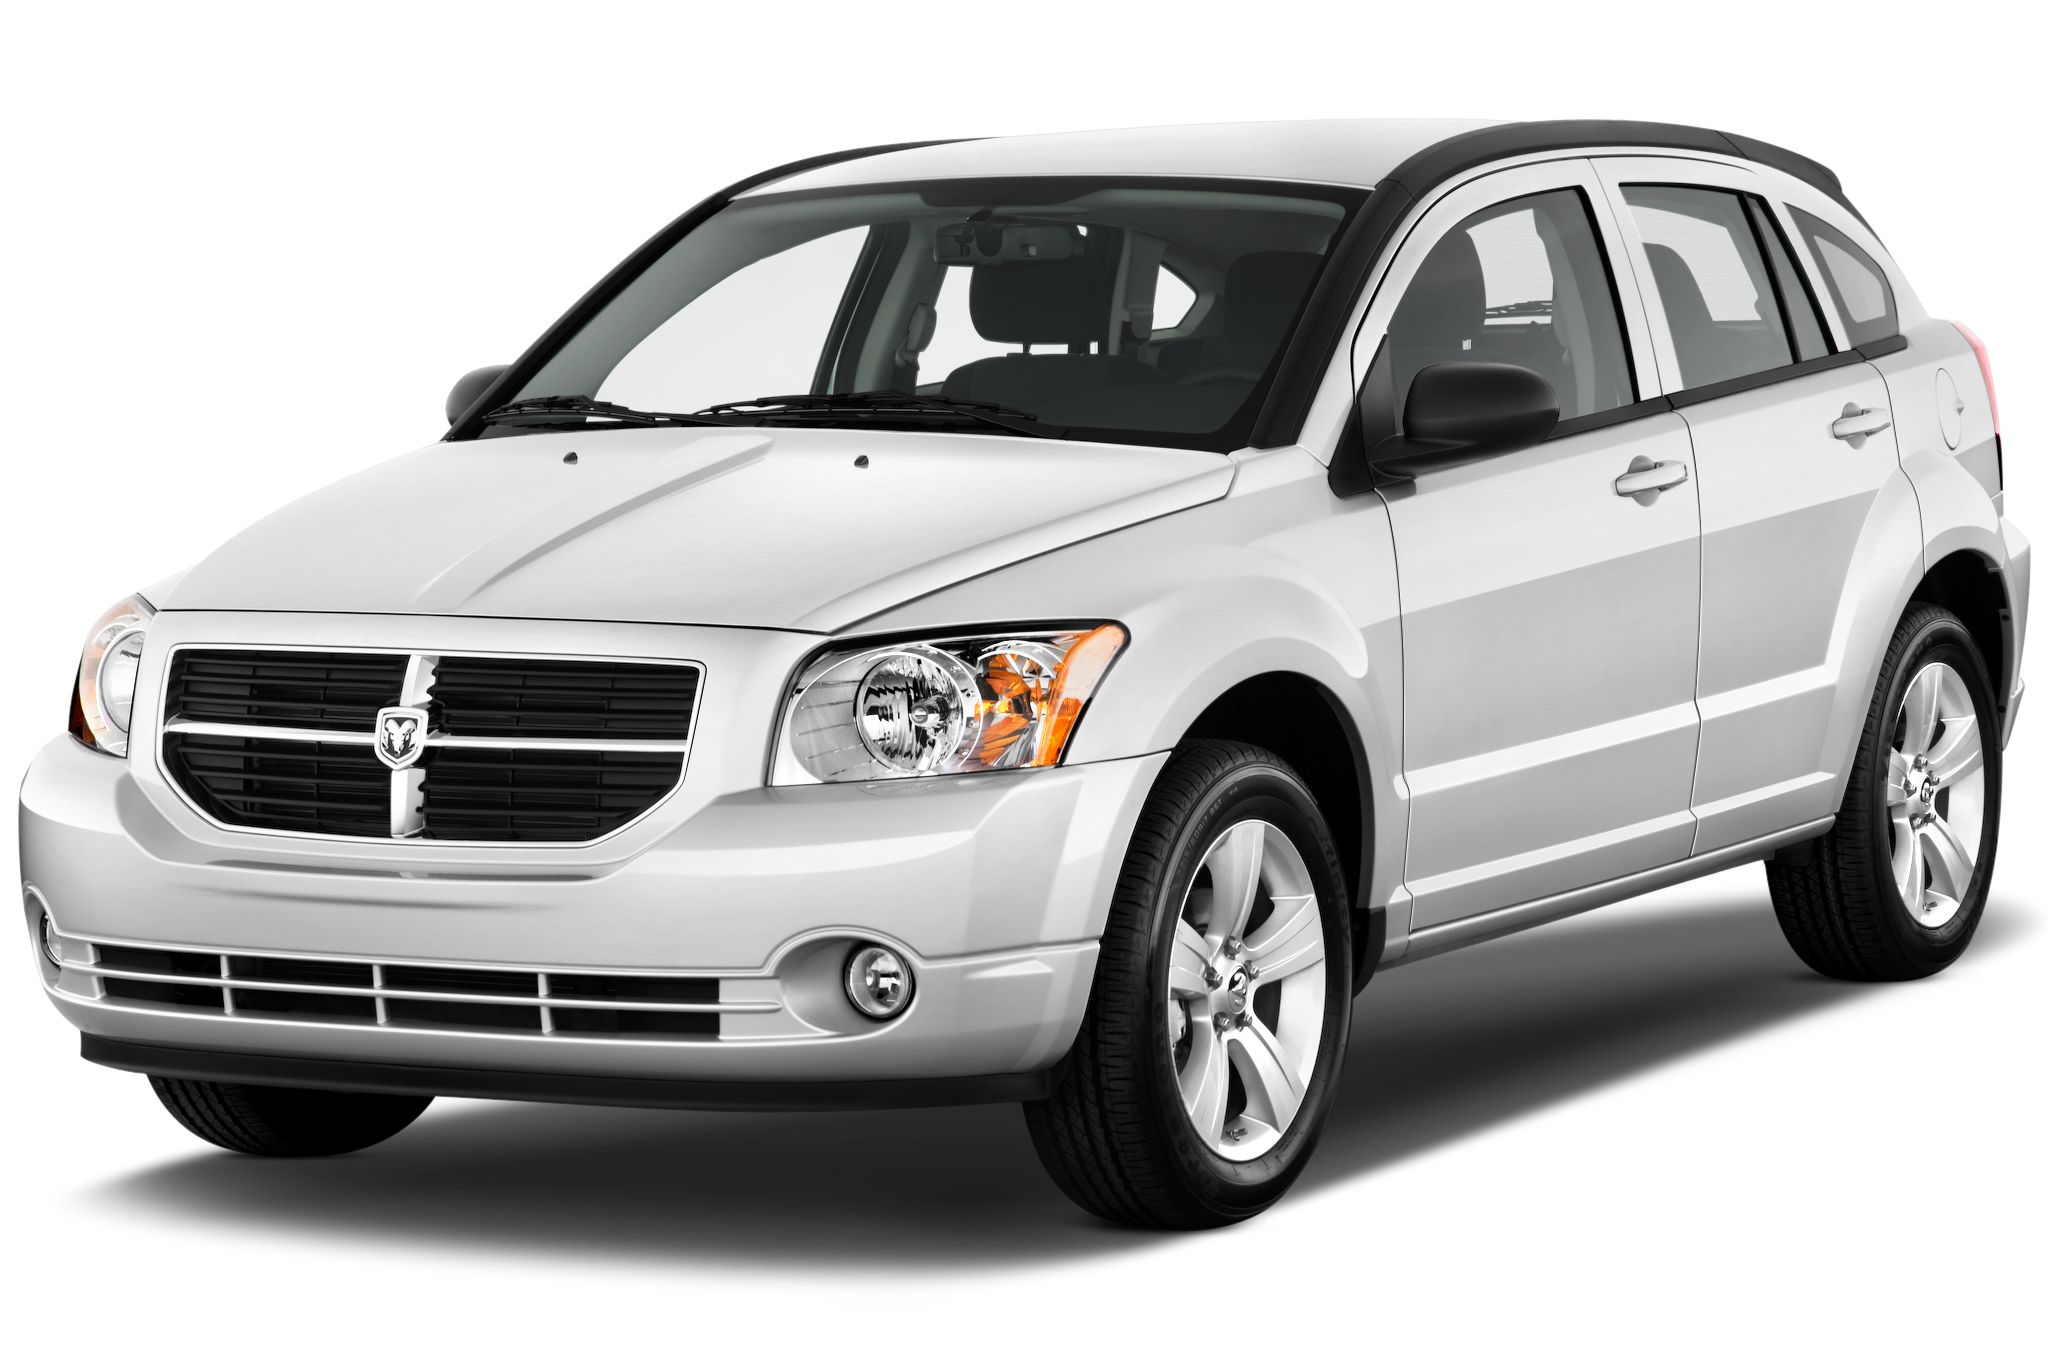 dodge caliber production ends soon to be replaced by dodge dart. Black Bedroom Furniture Sets. Home Design Ideas